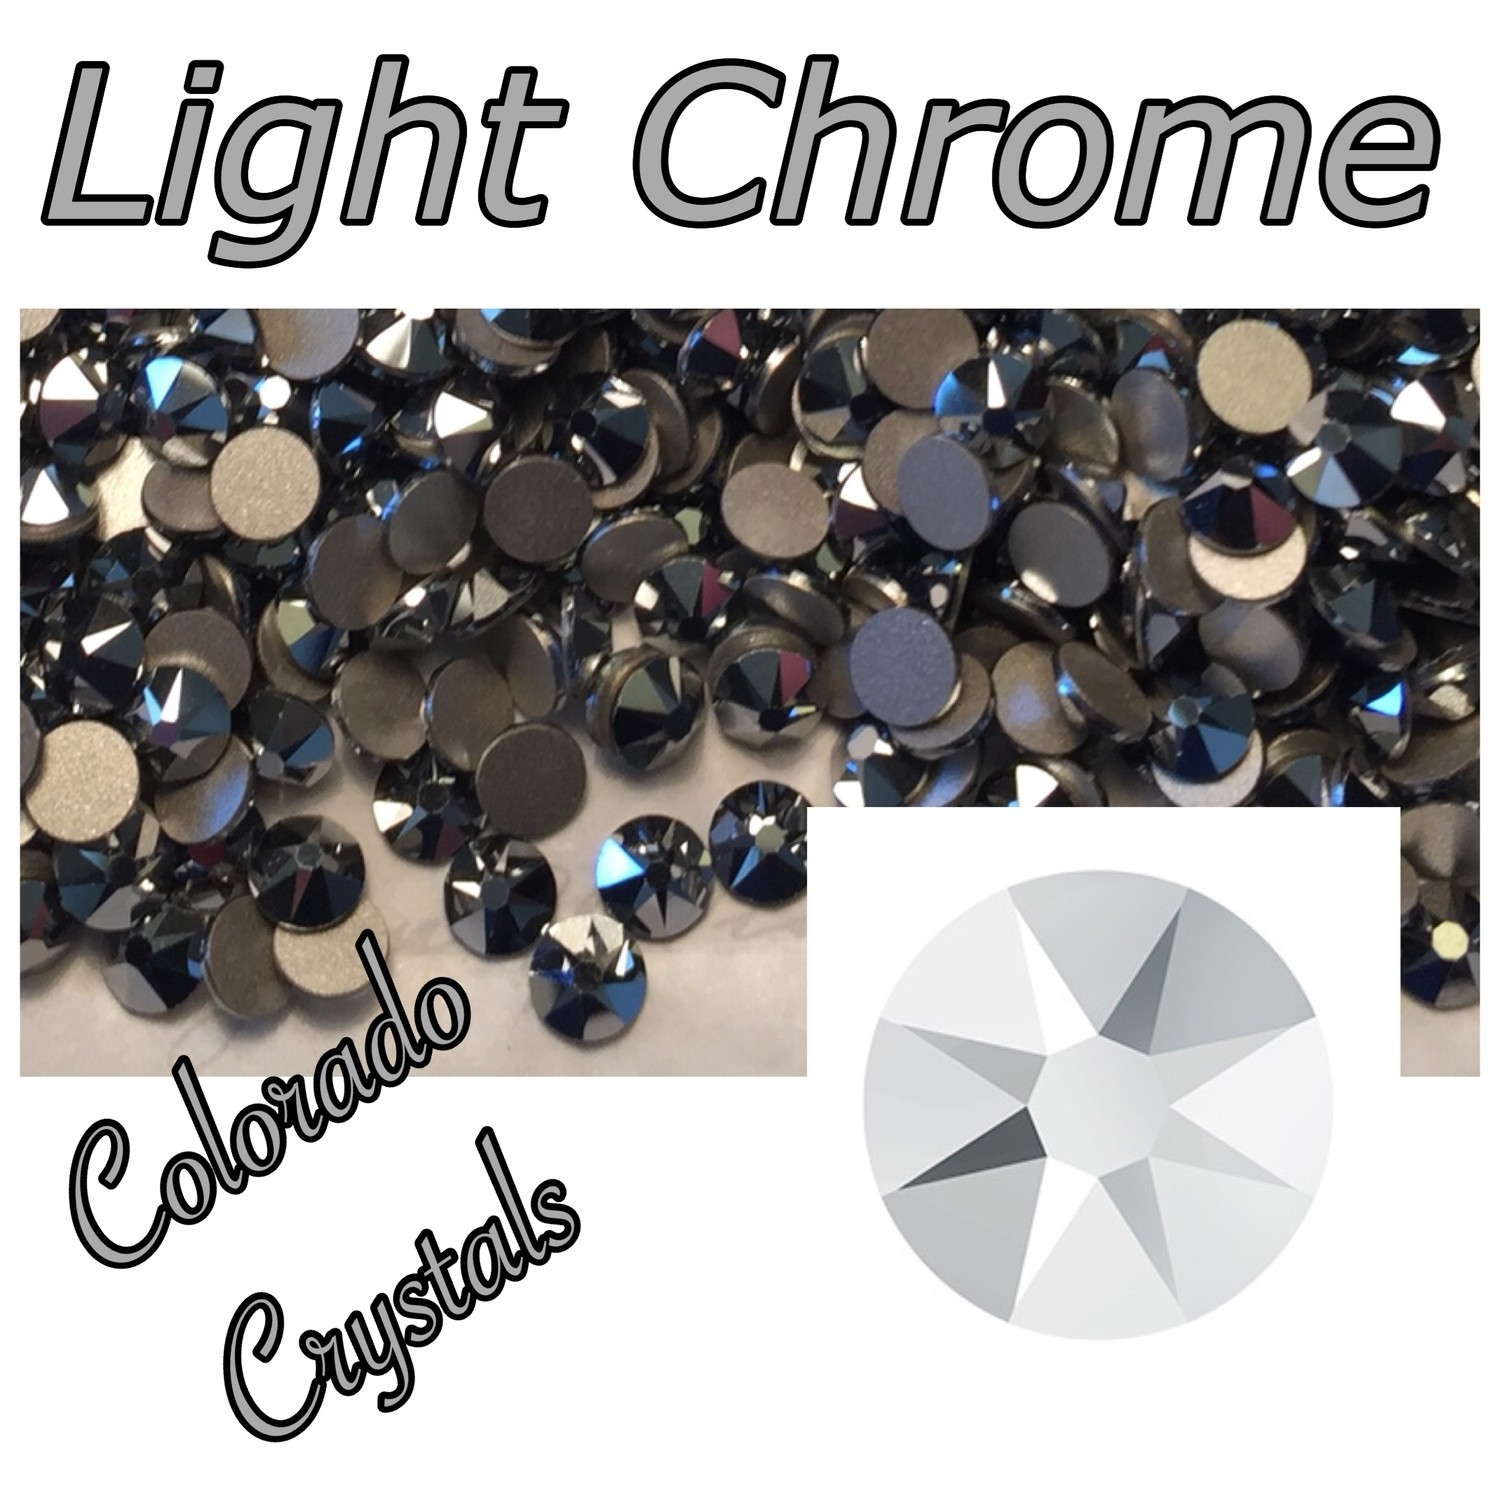 Light Chrome (Crystal) 30ss 2088